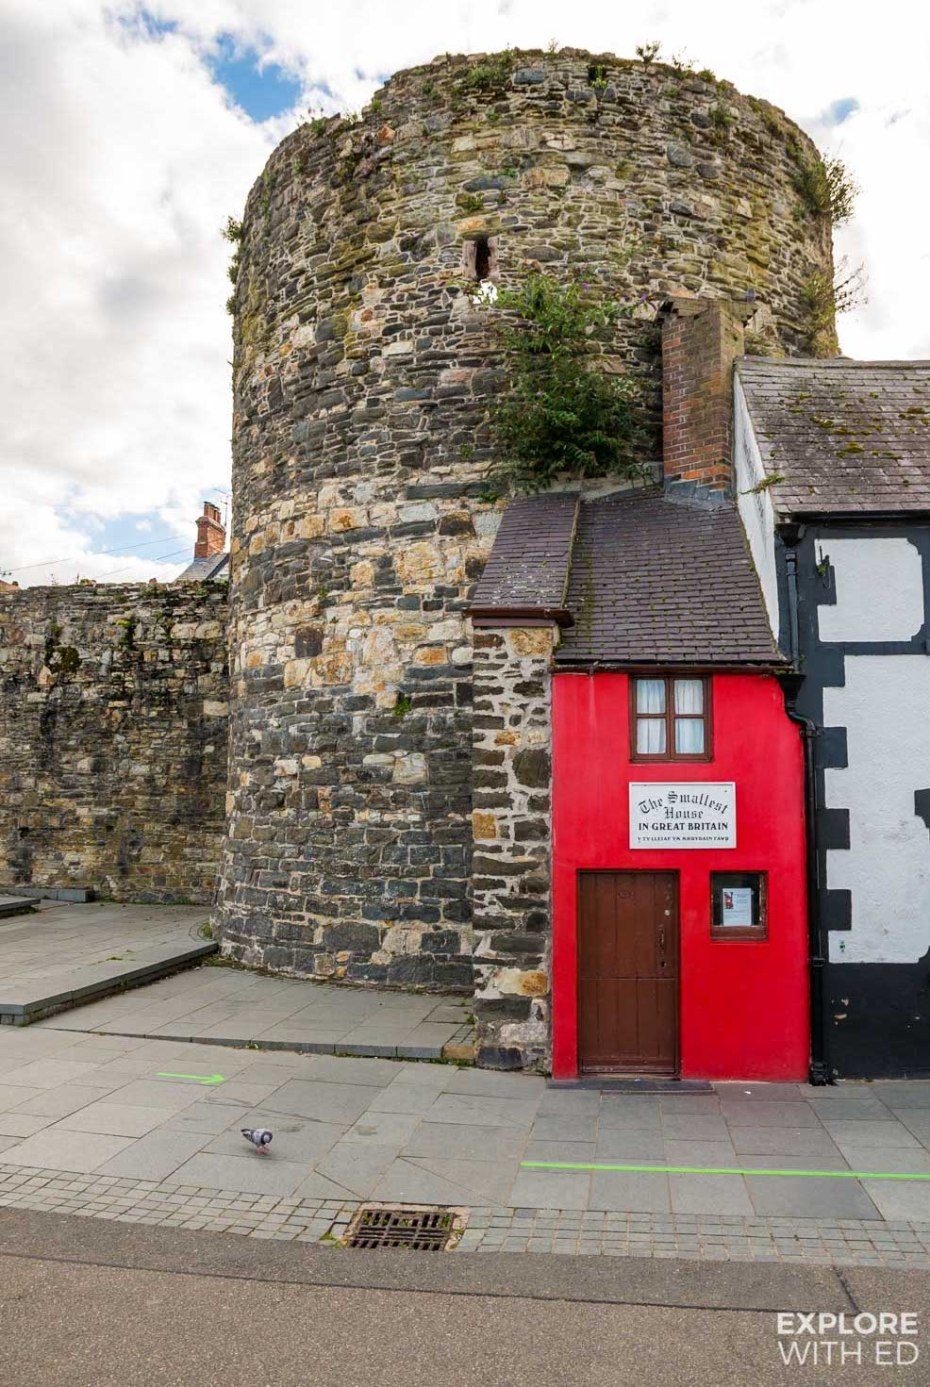 The smallest house in Great Britain in Conwy, Wales